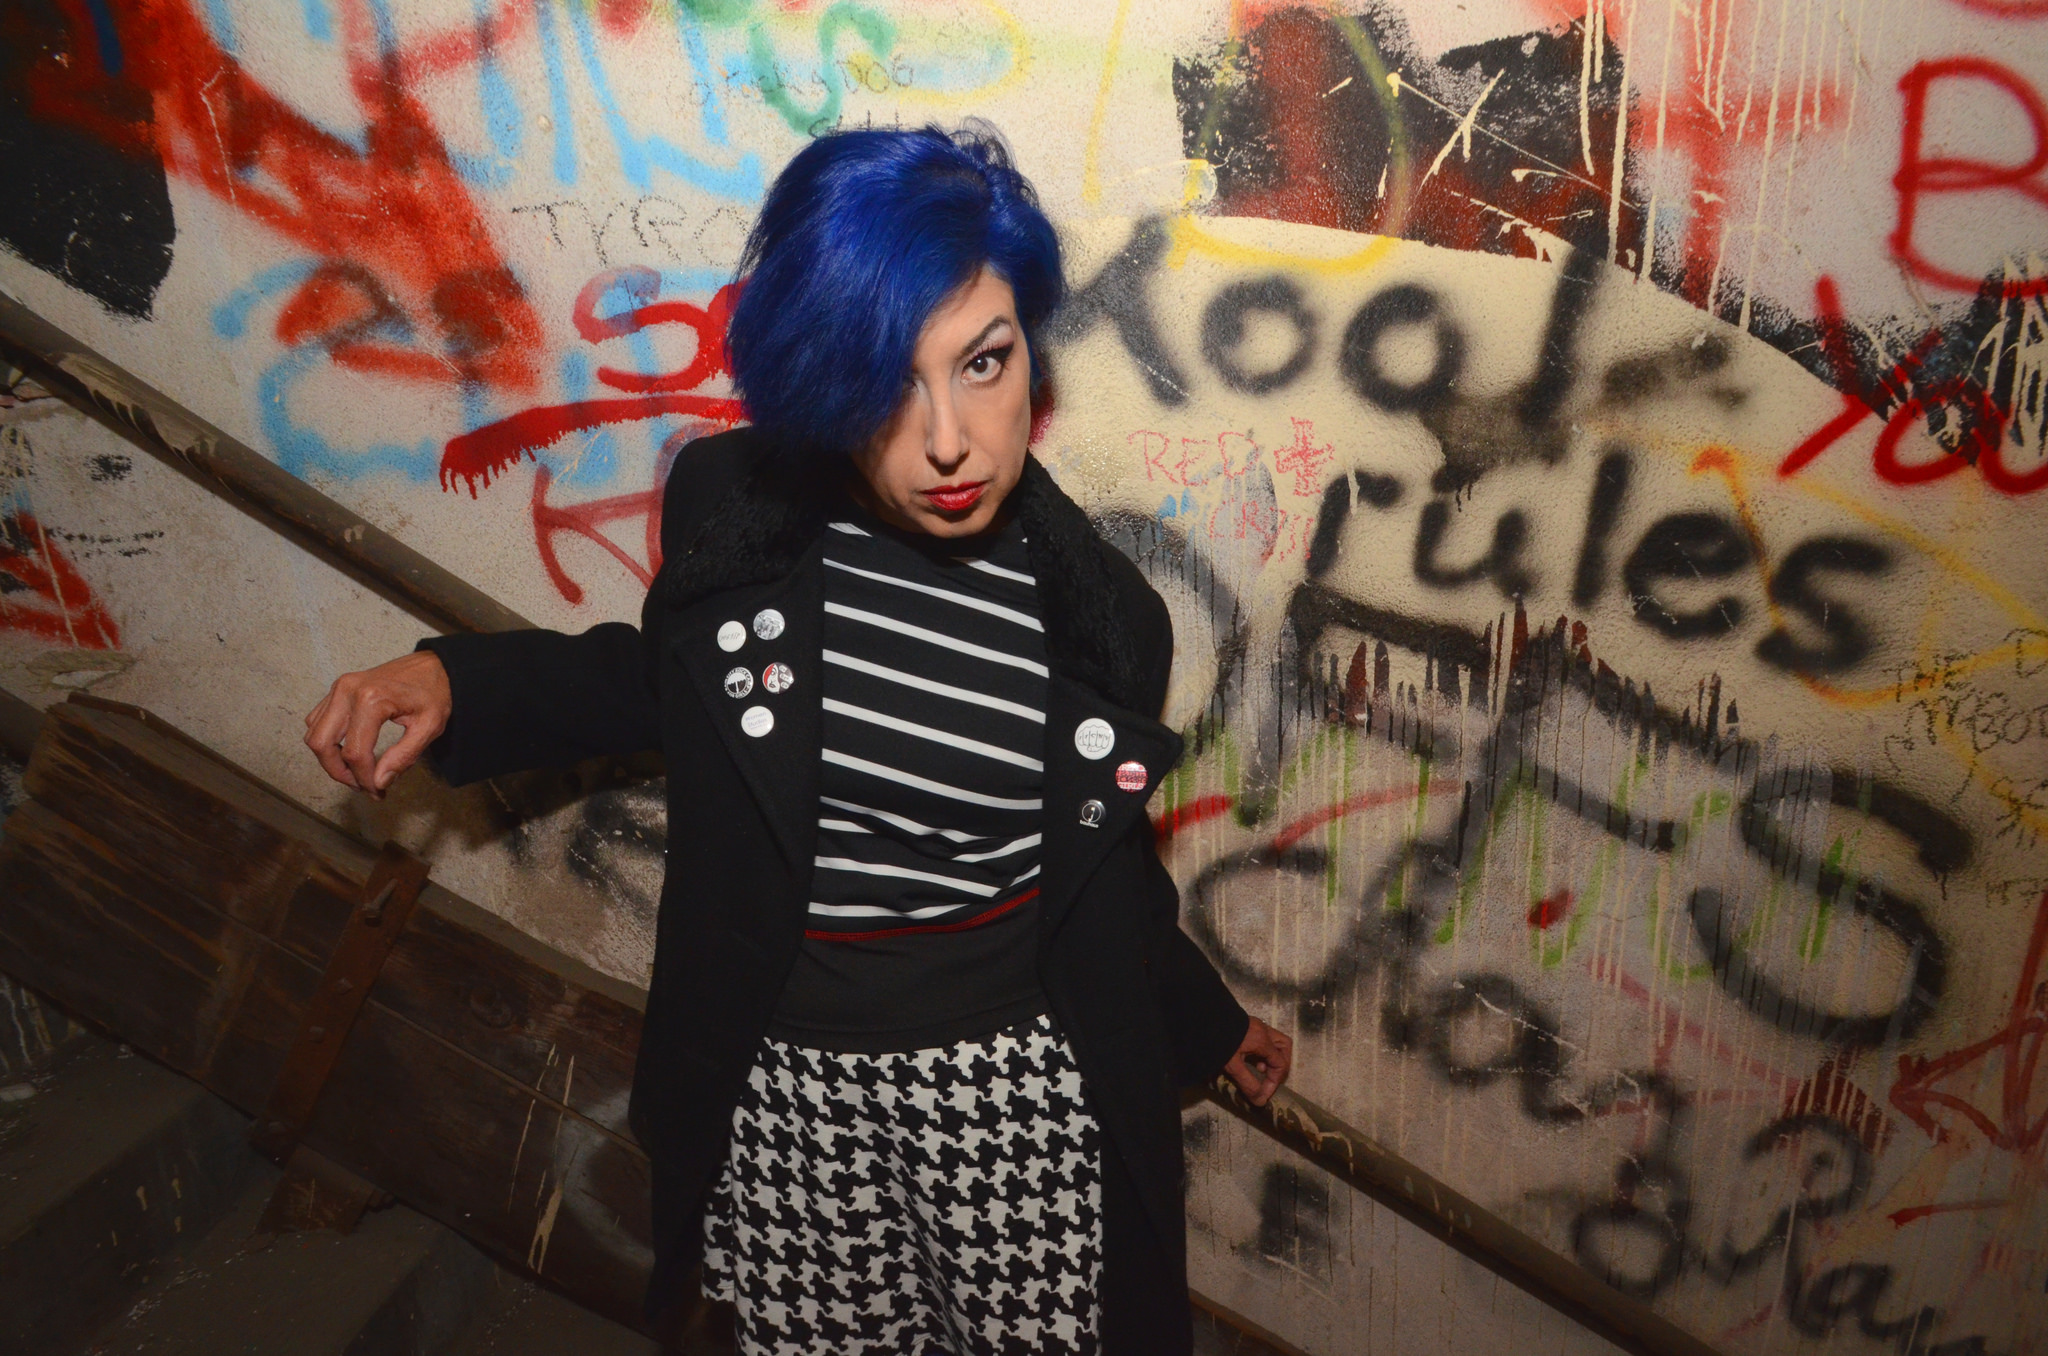 You Should Stream: Follow Chicana Punk Icon Alice Bag on Tour in This Short Doc